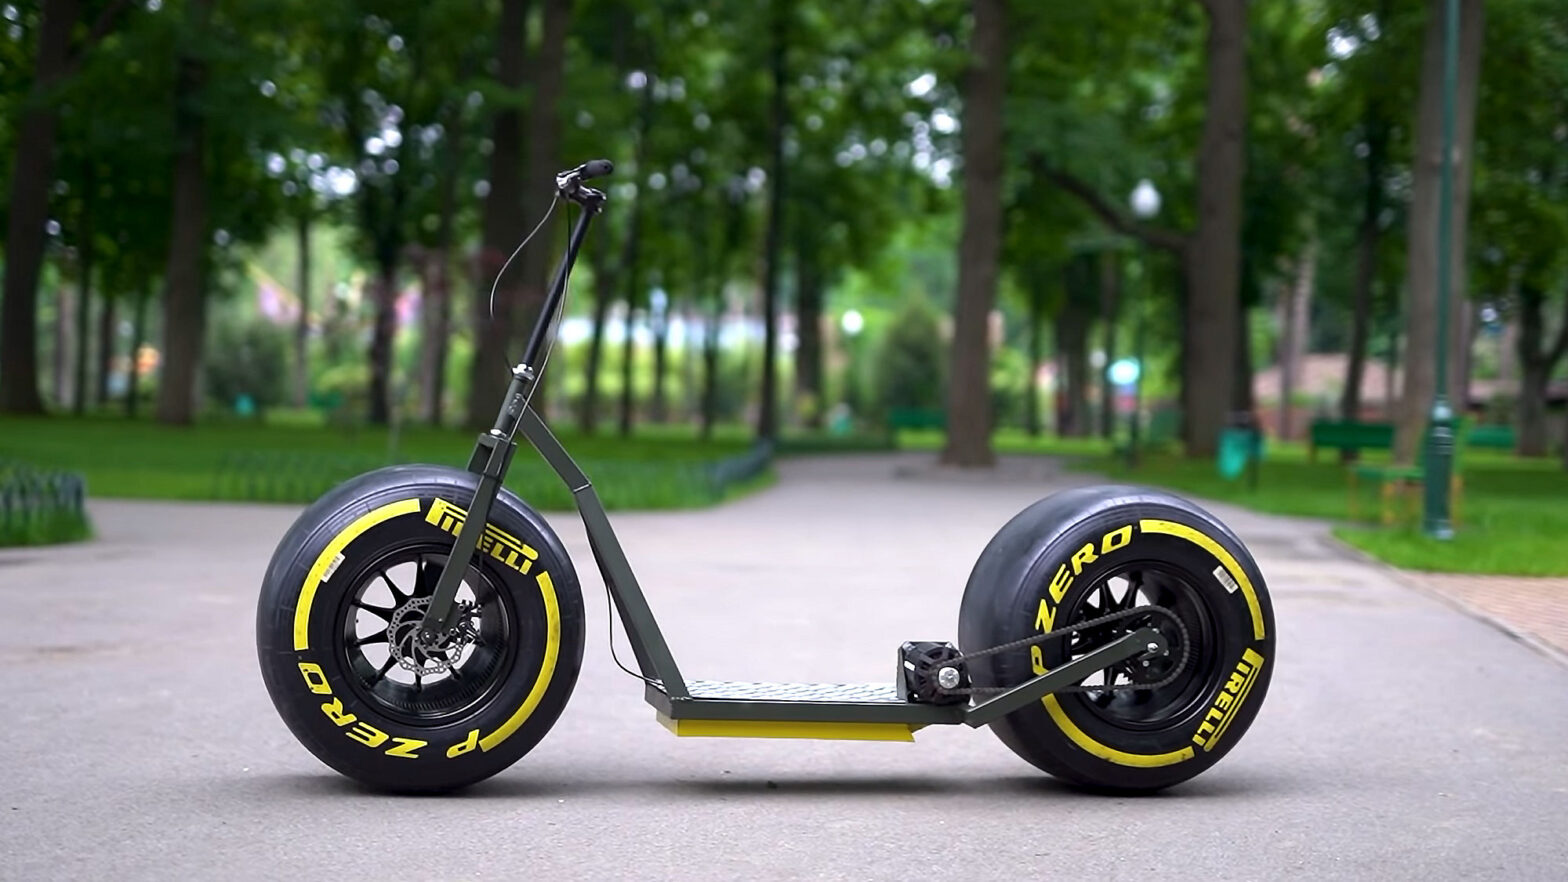 Scooter with Fat F1 Tires by The Q